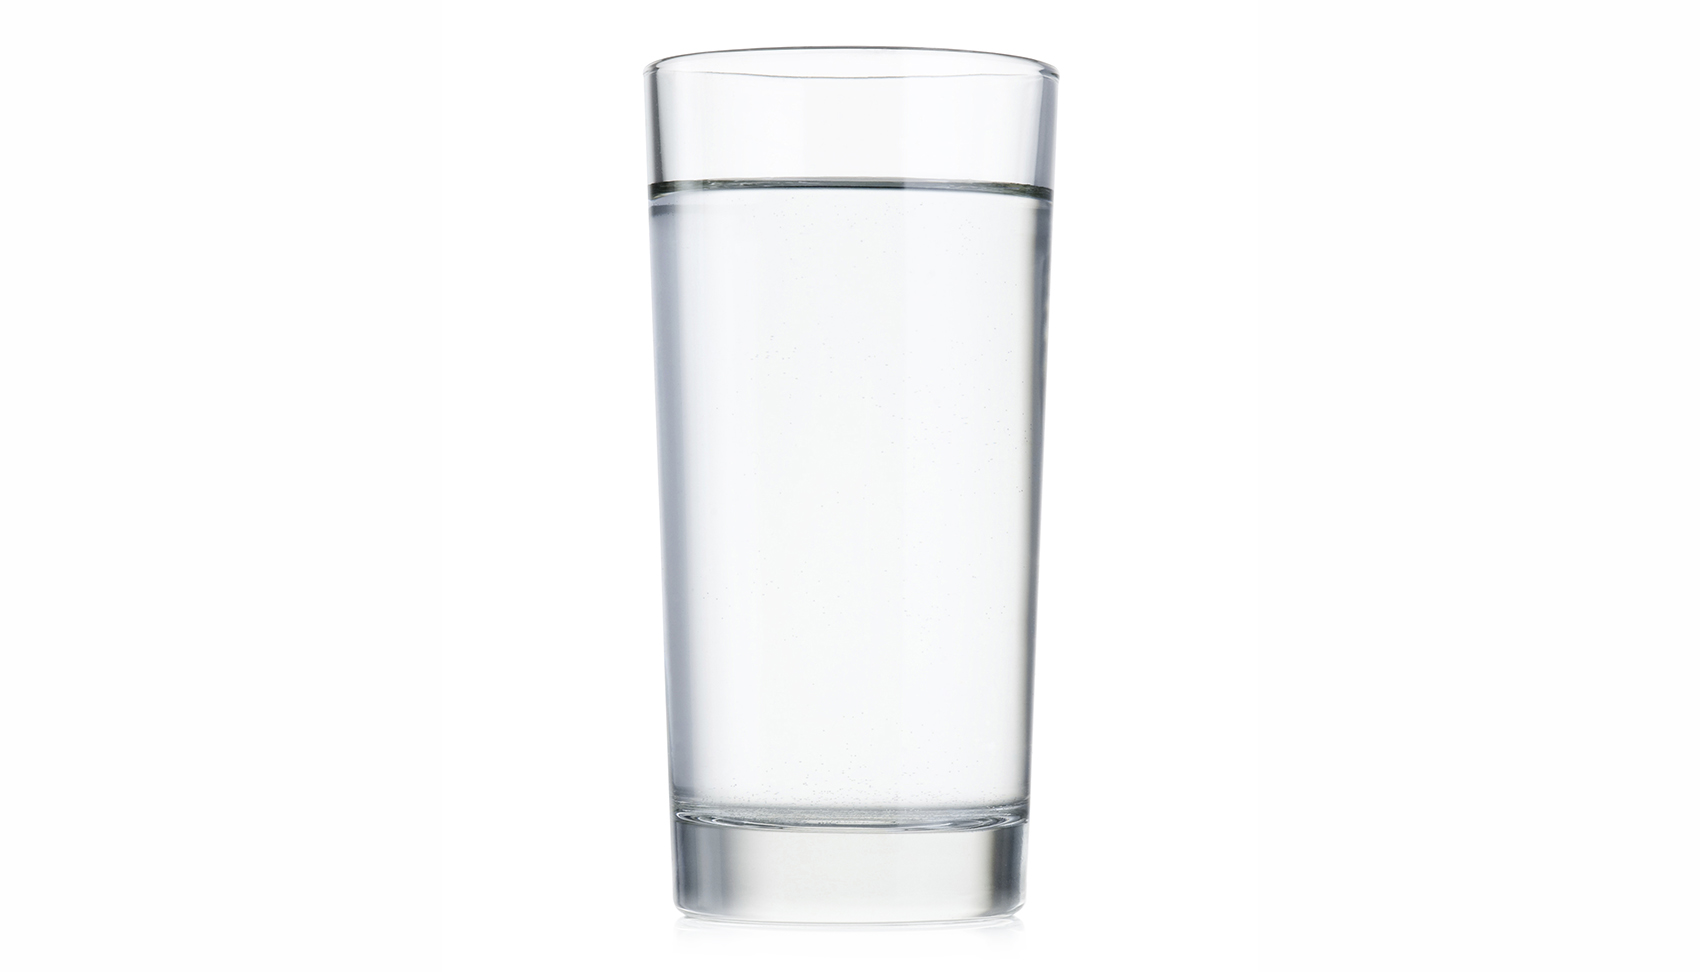 Water in clear glass